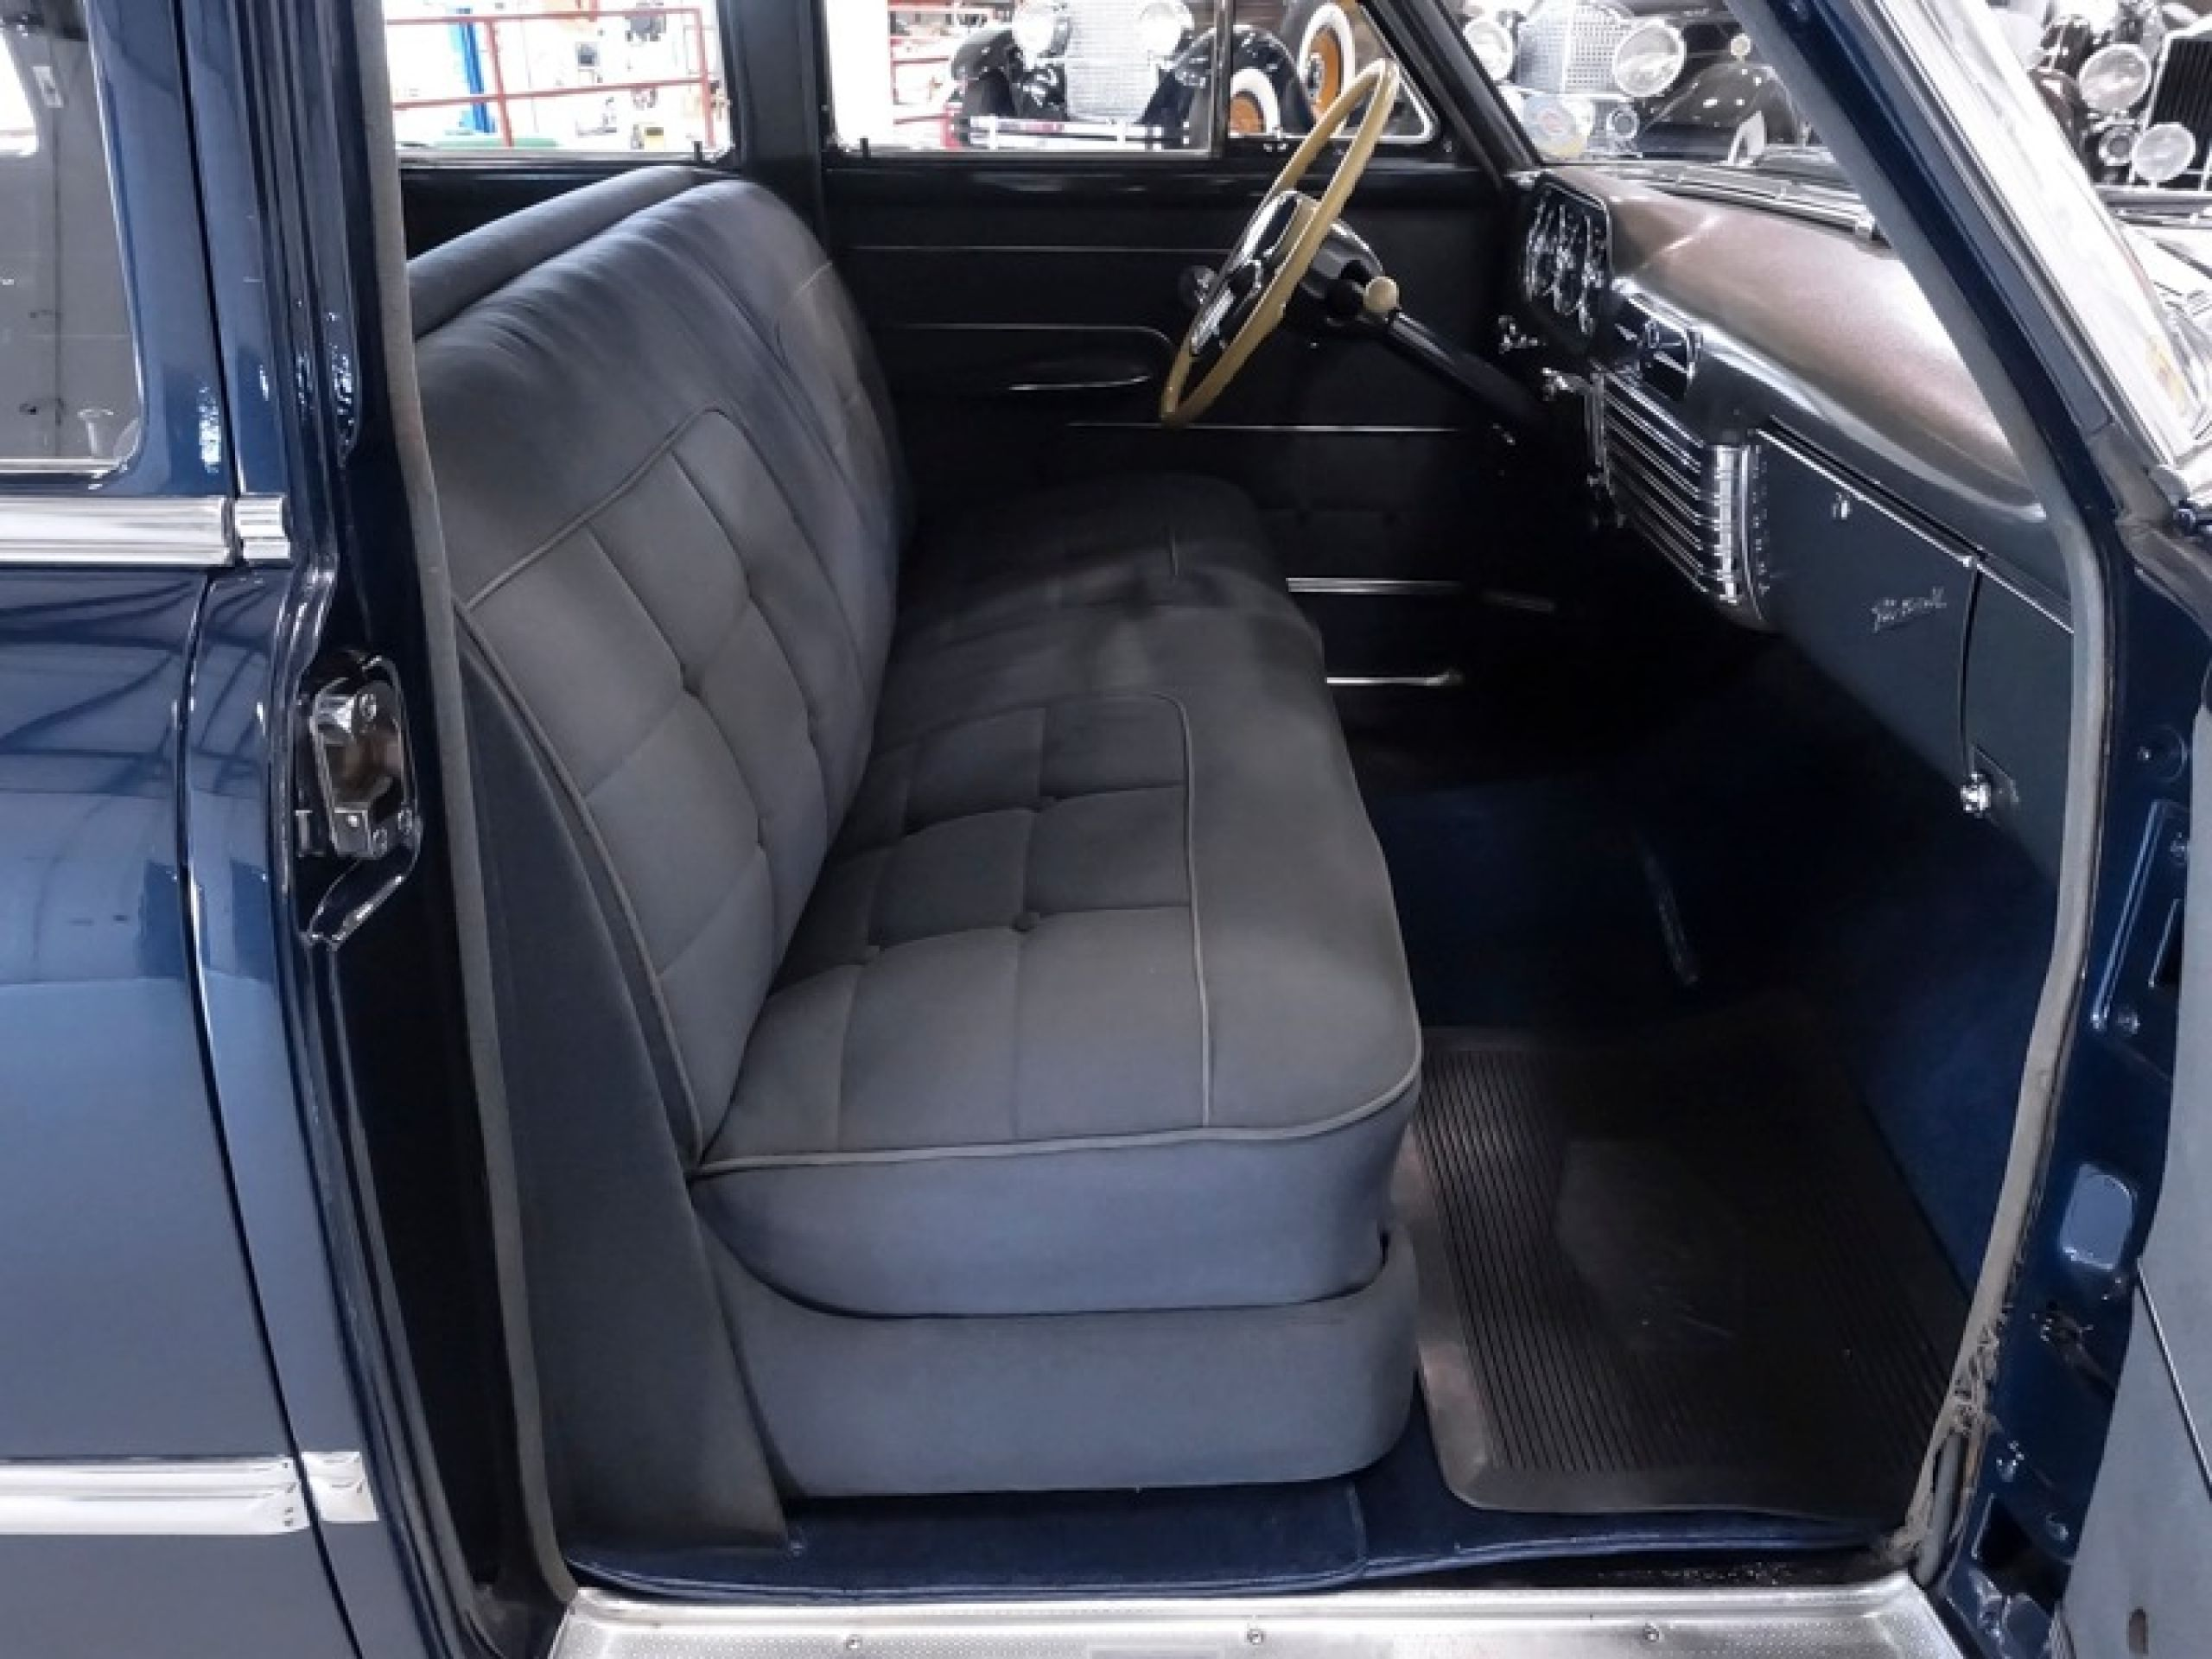 1953 Packard Executive Limousine by Henney (Used by the Secret Service)